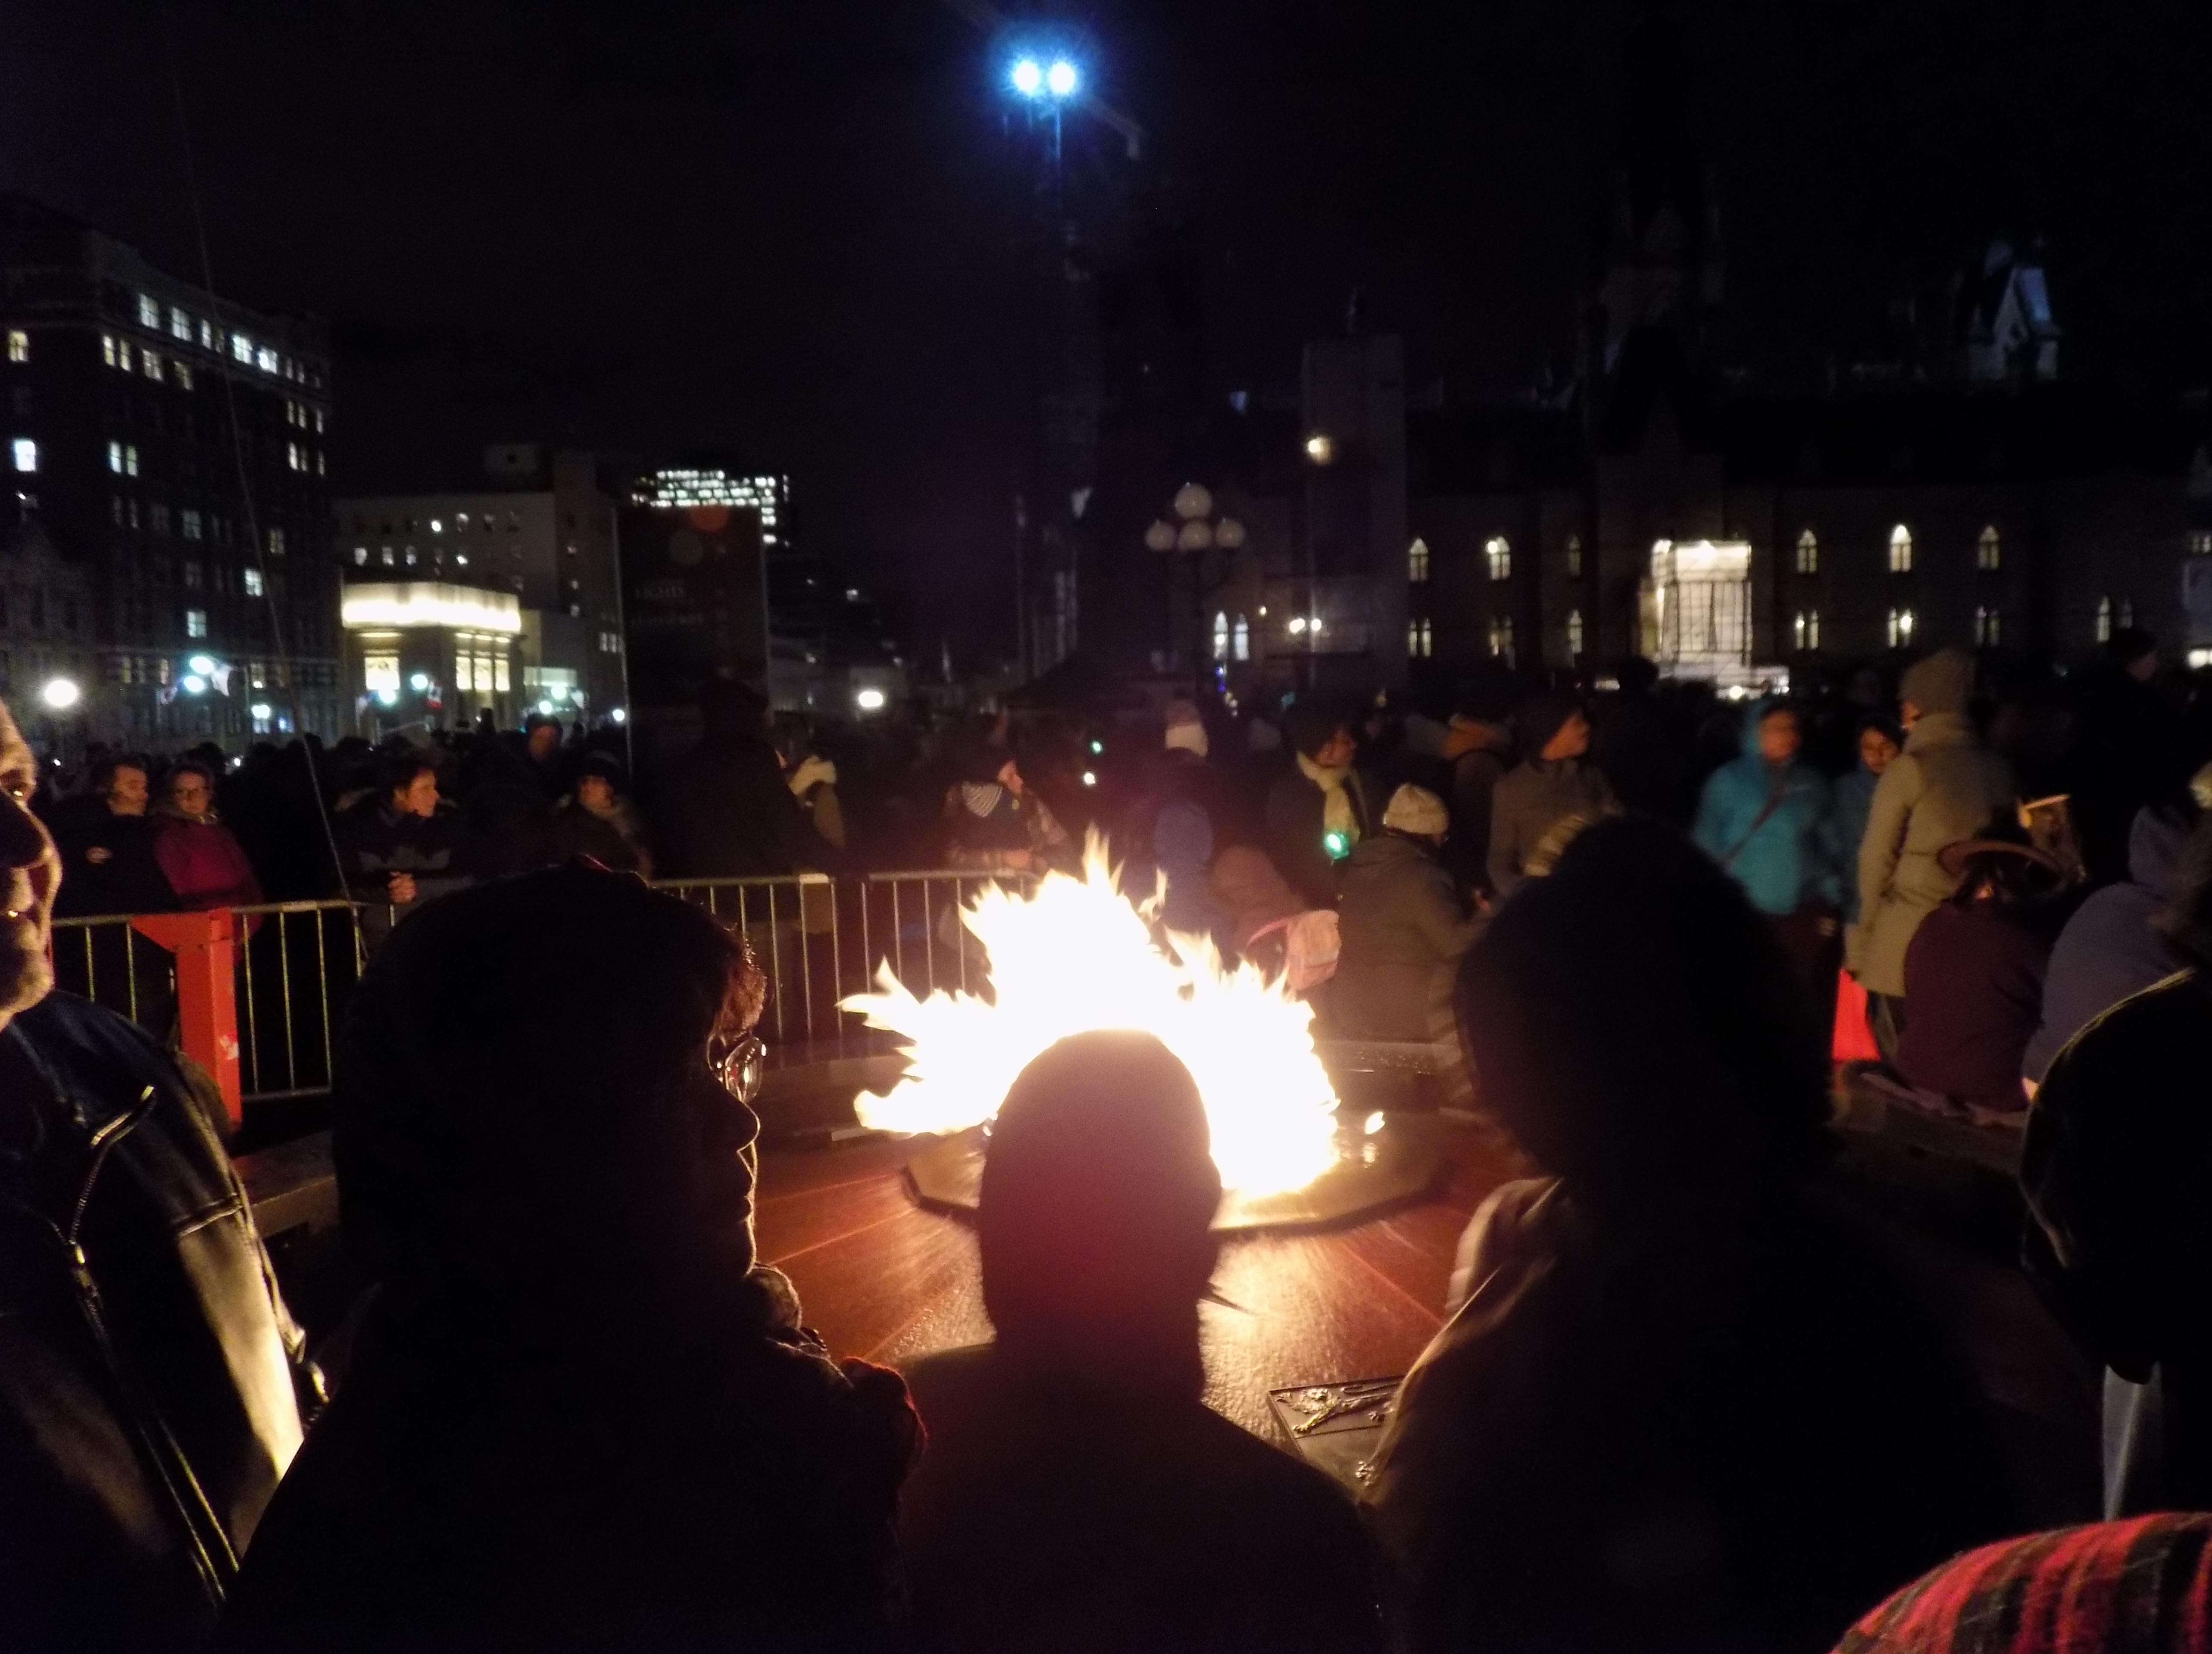 the centennial flame on parliament hill contributed to the holiday spirit it was supposed to